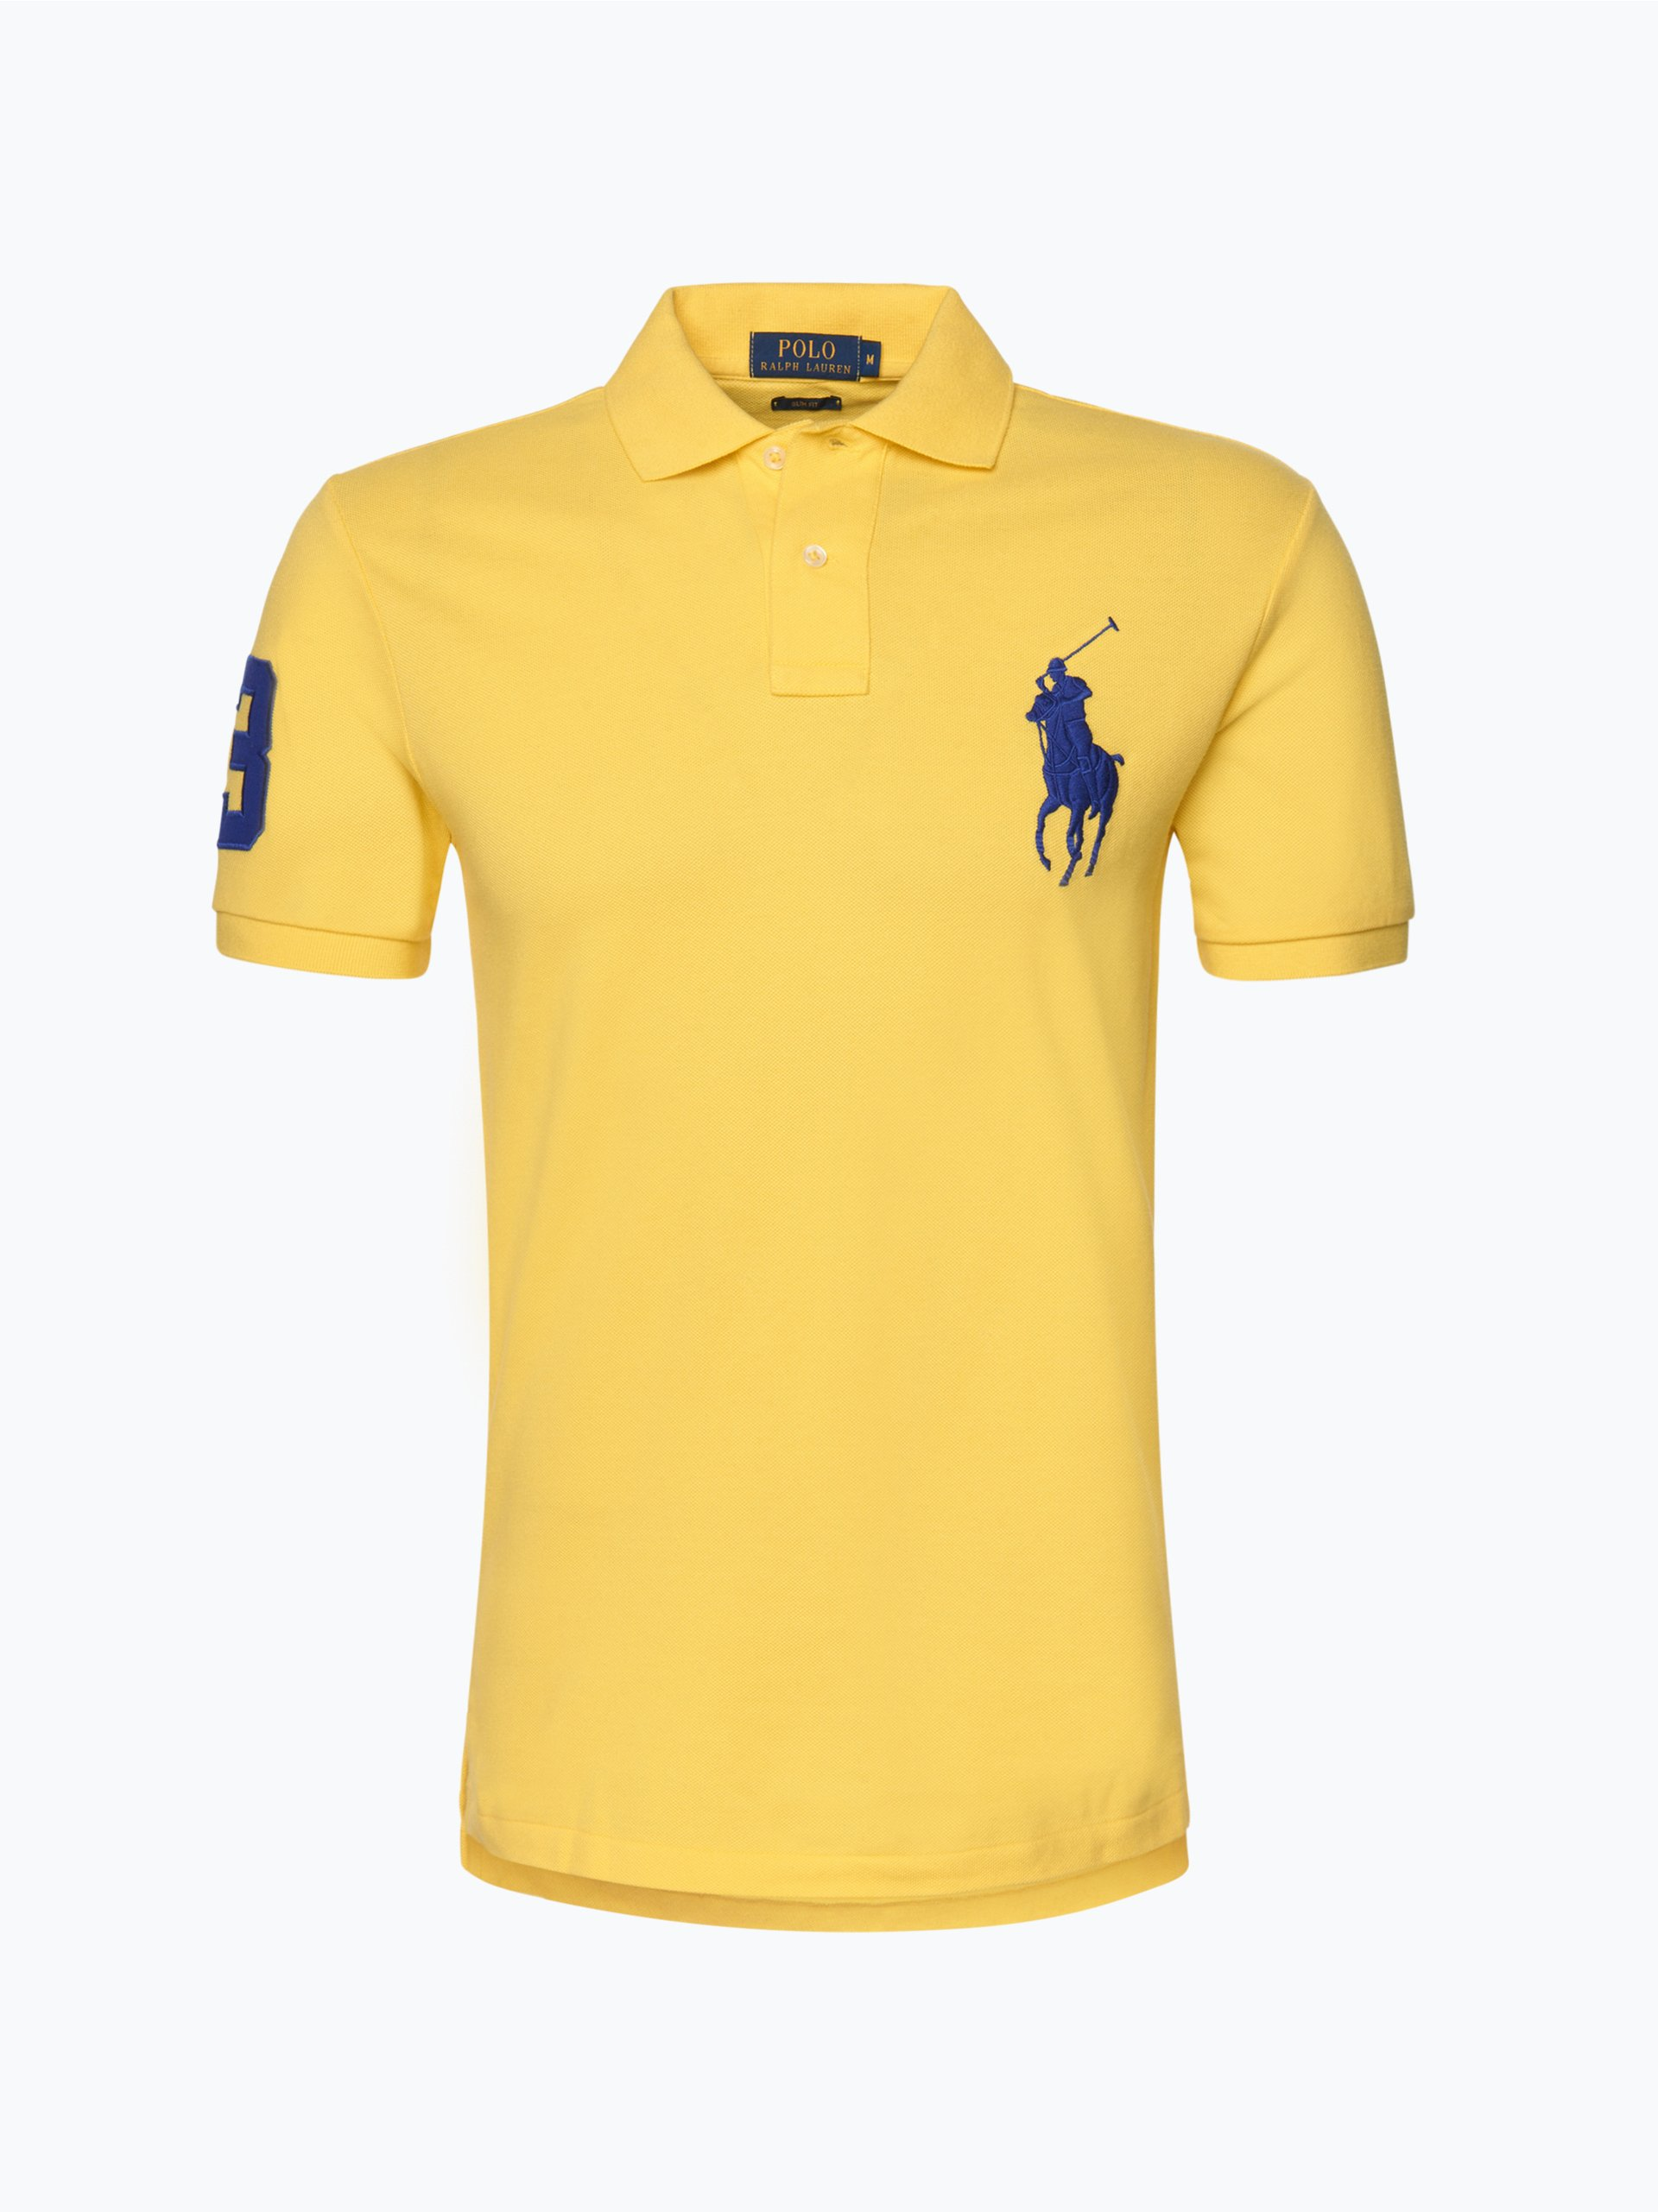 polo ralph lauren herren poloshirt gelb uni online kaufen. Black Bedroom Furniture Sets. Home Design Ideas